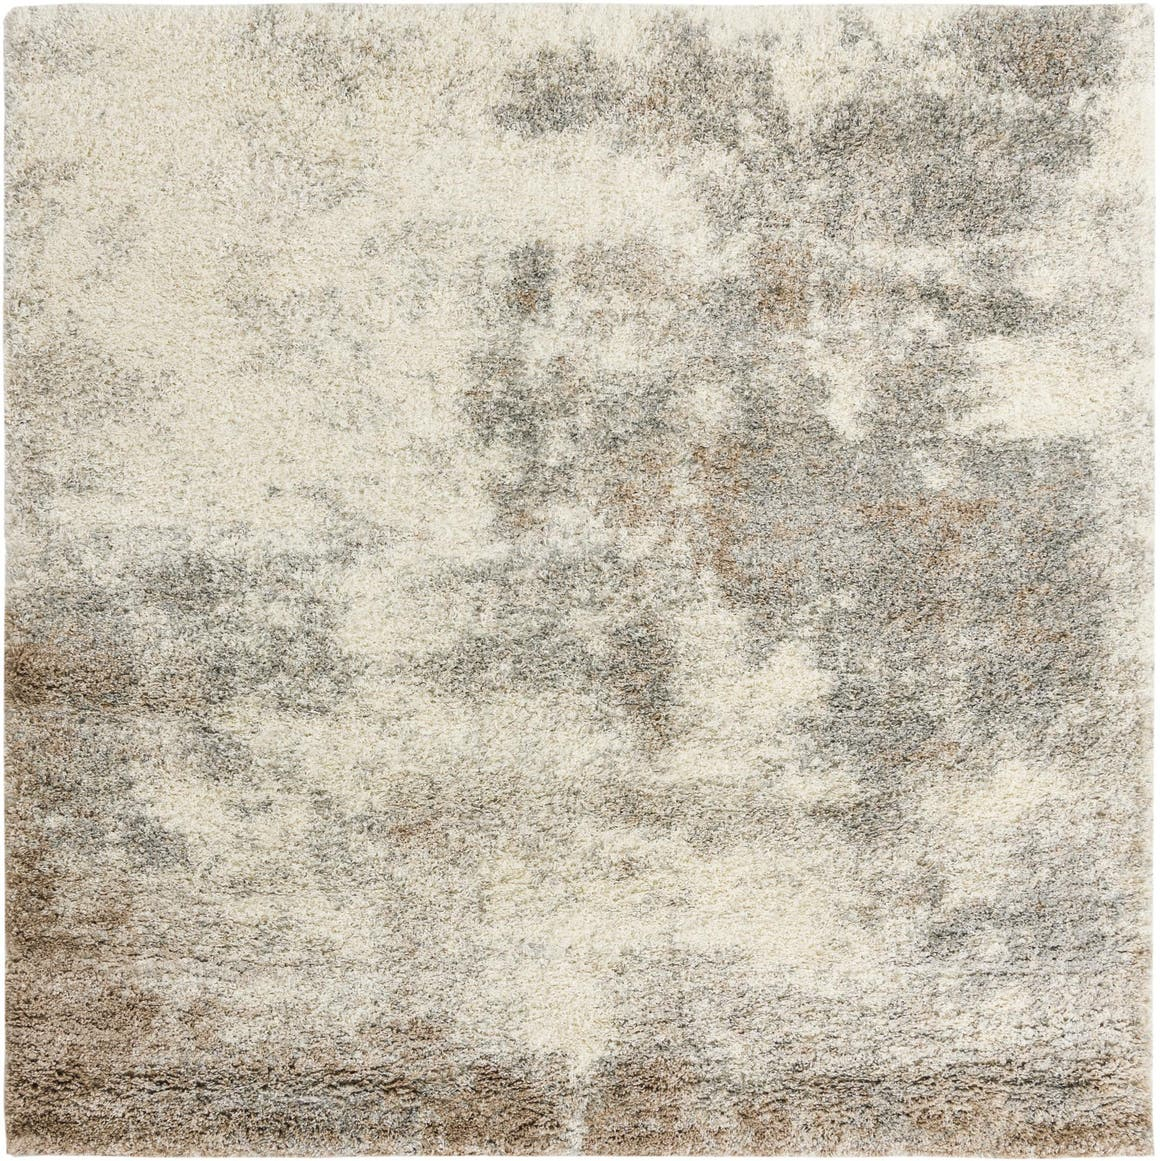 8' x 8' Soft Touch Shag Square Rug main image